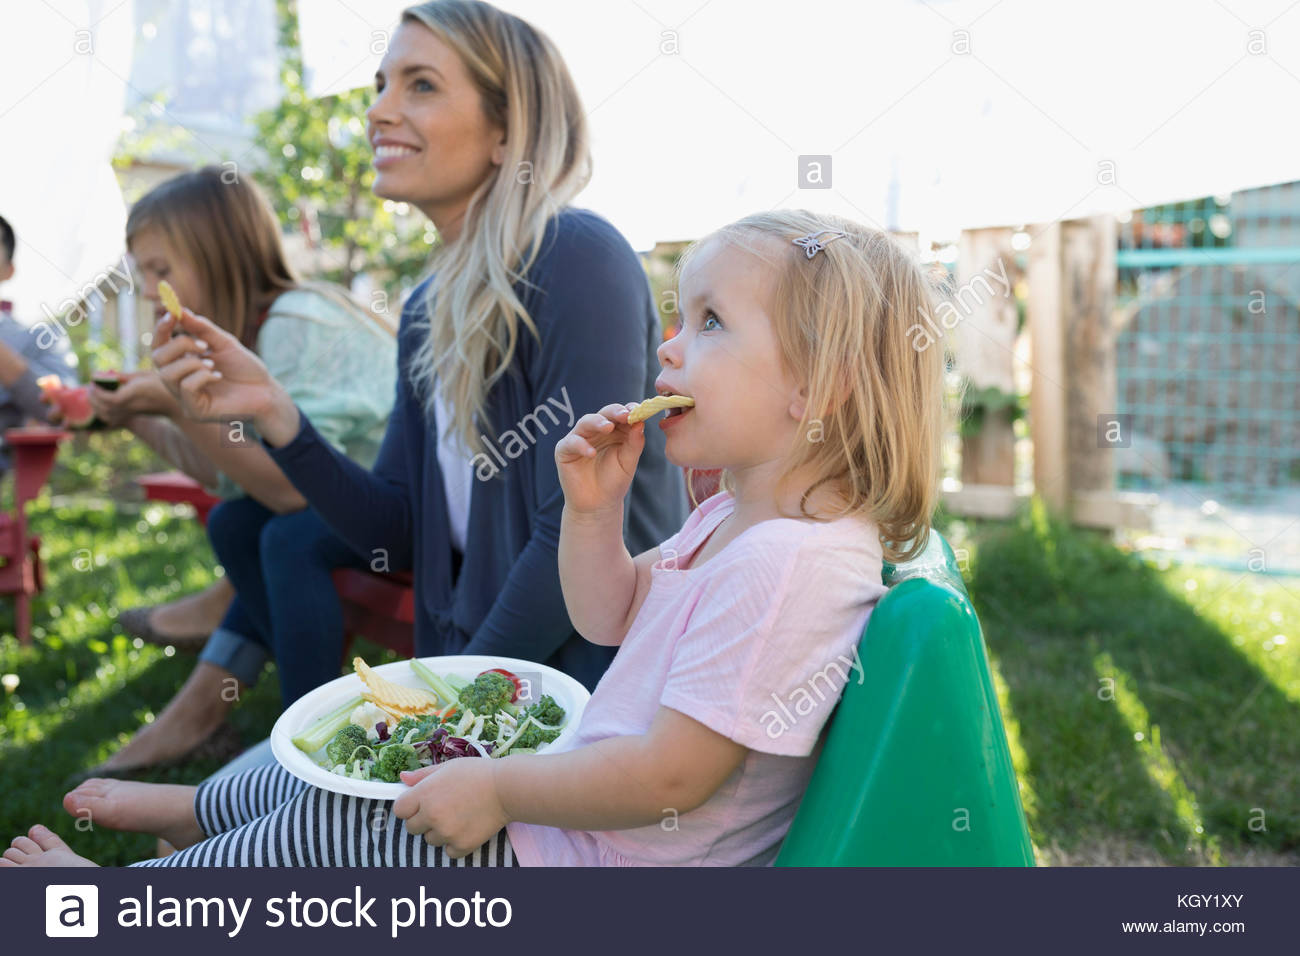 Mother and toddler daughter eating at backyard barbecue - Stock Image